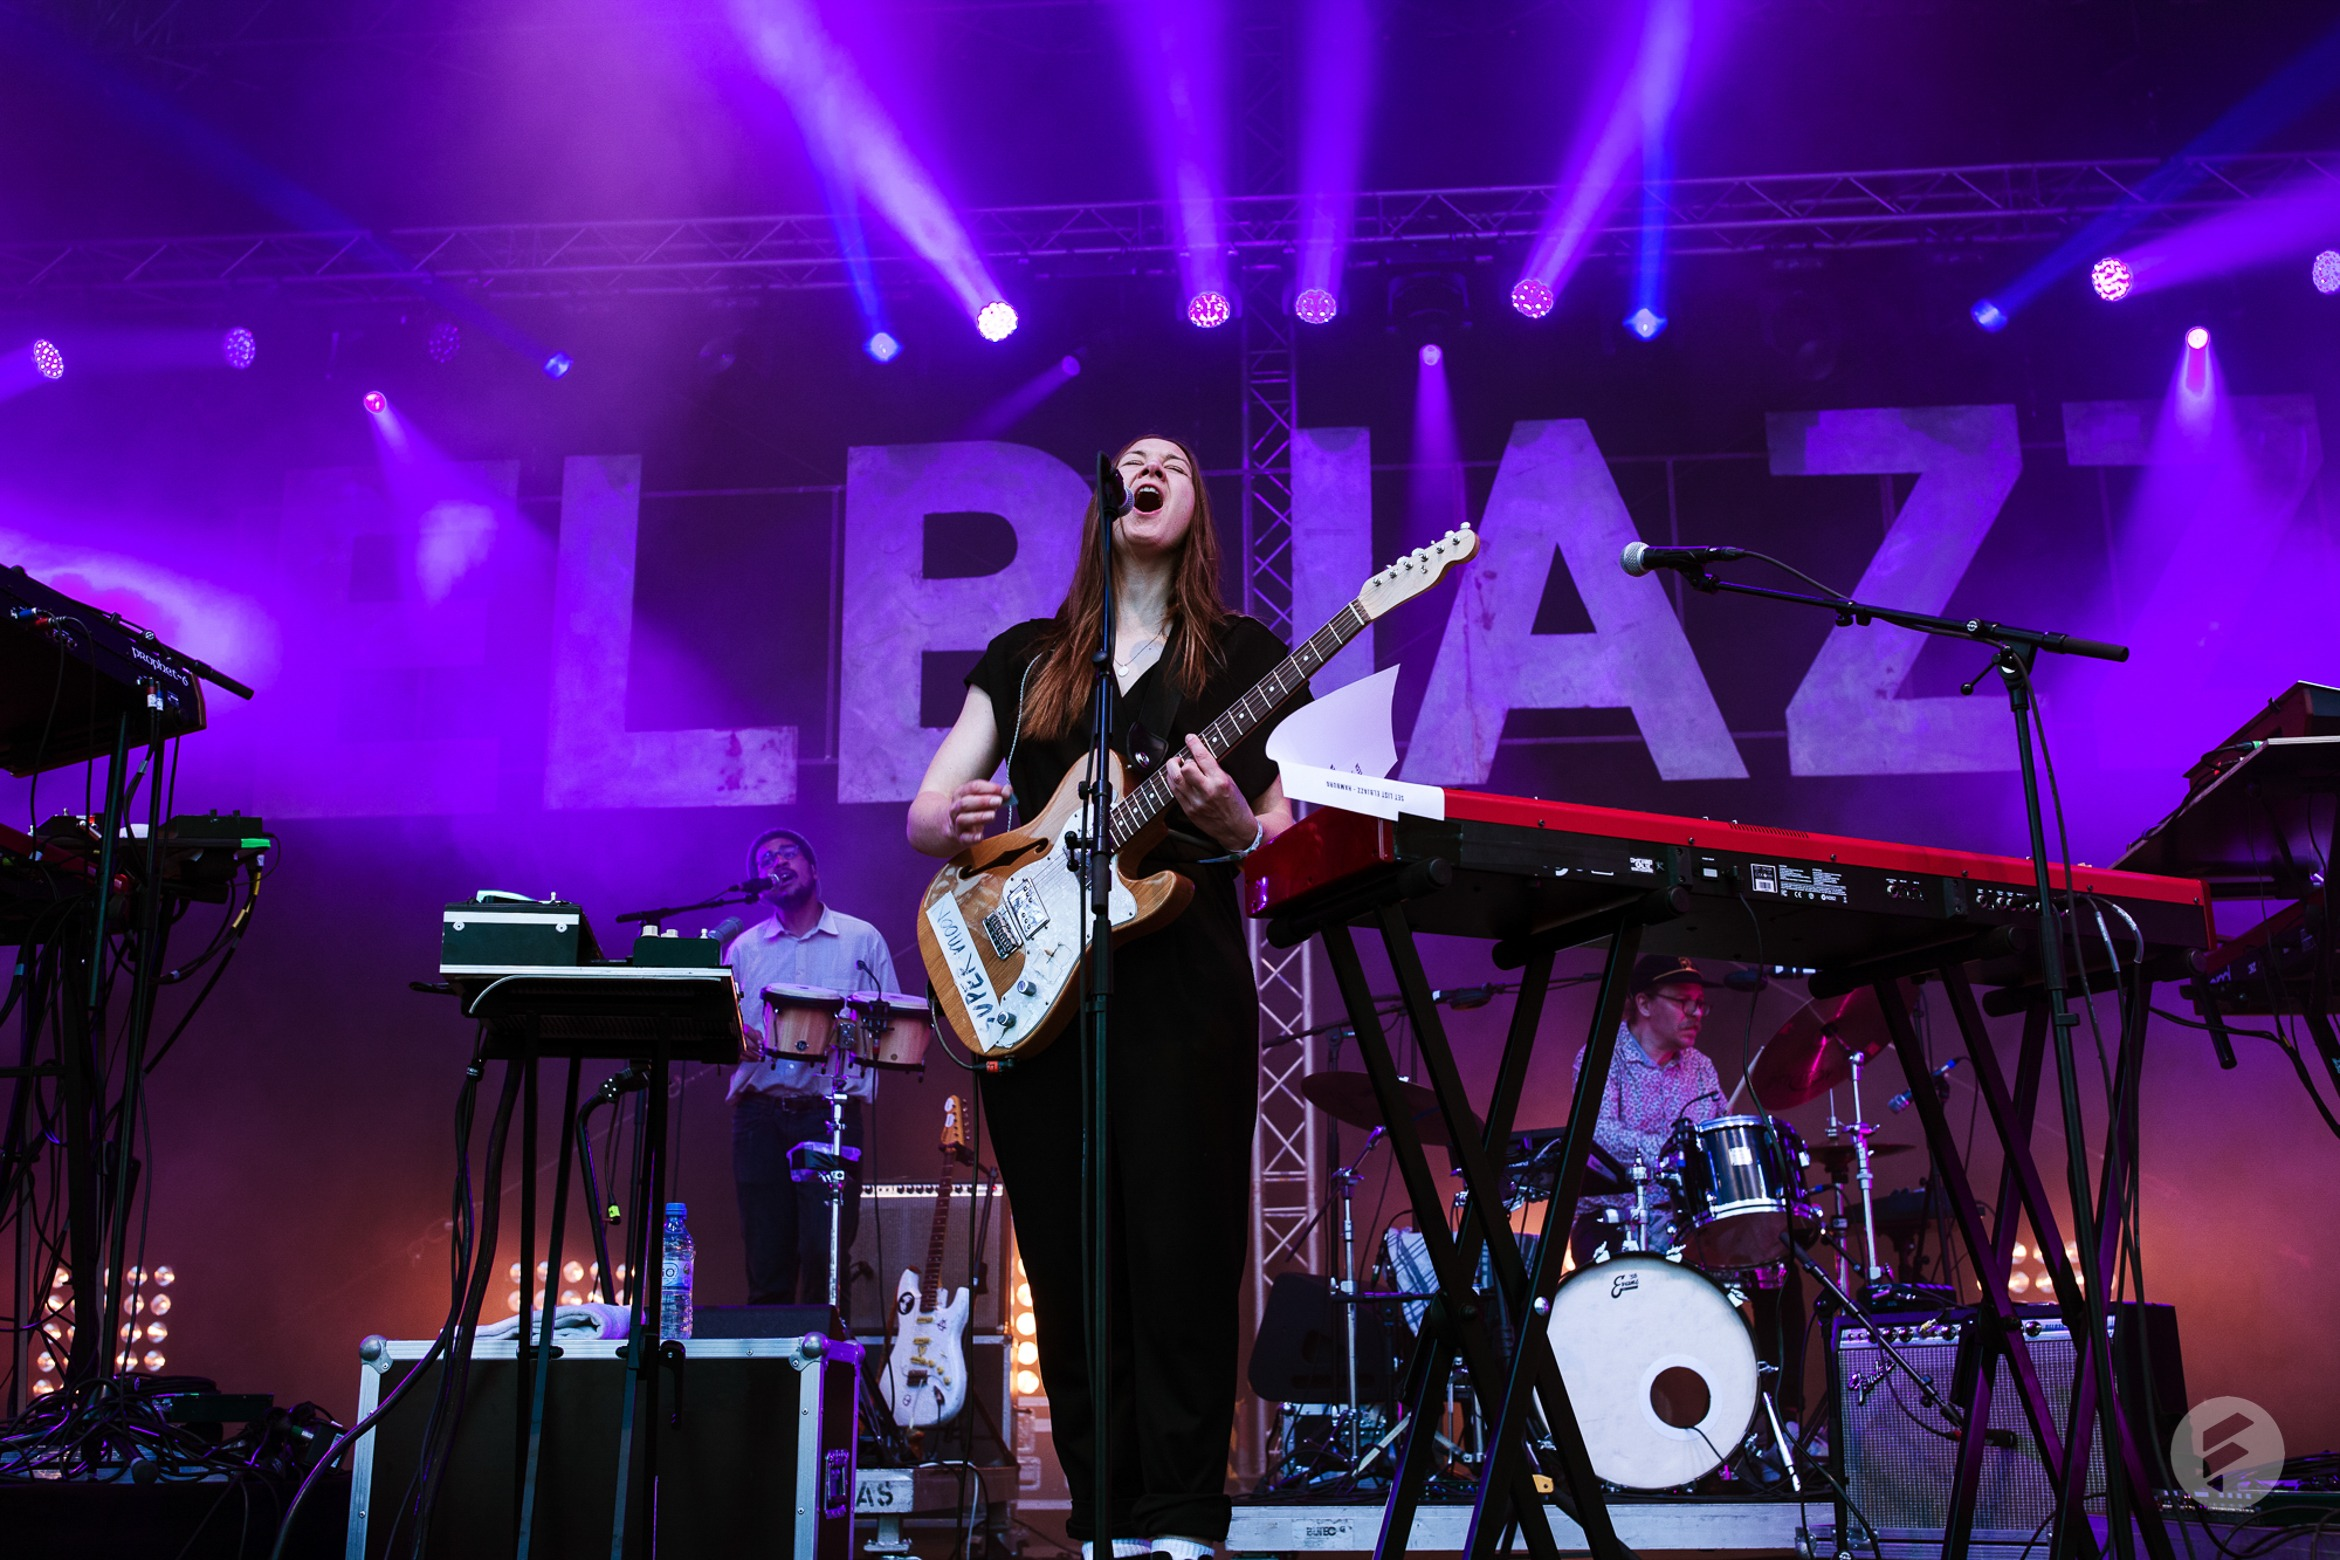 Sophie Hunger beim Elbjazz 2019 in Hamburg. (stagr / Axel Schilling)